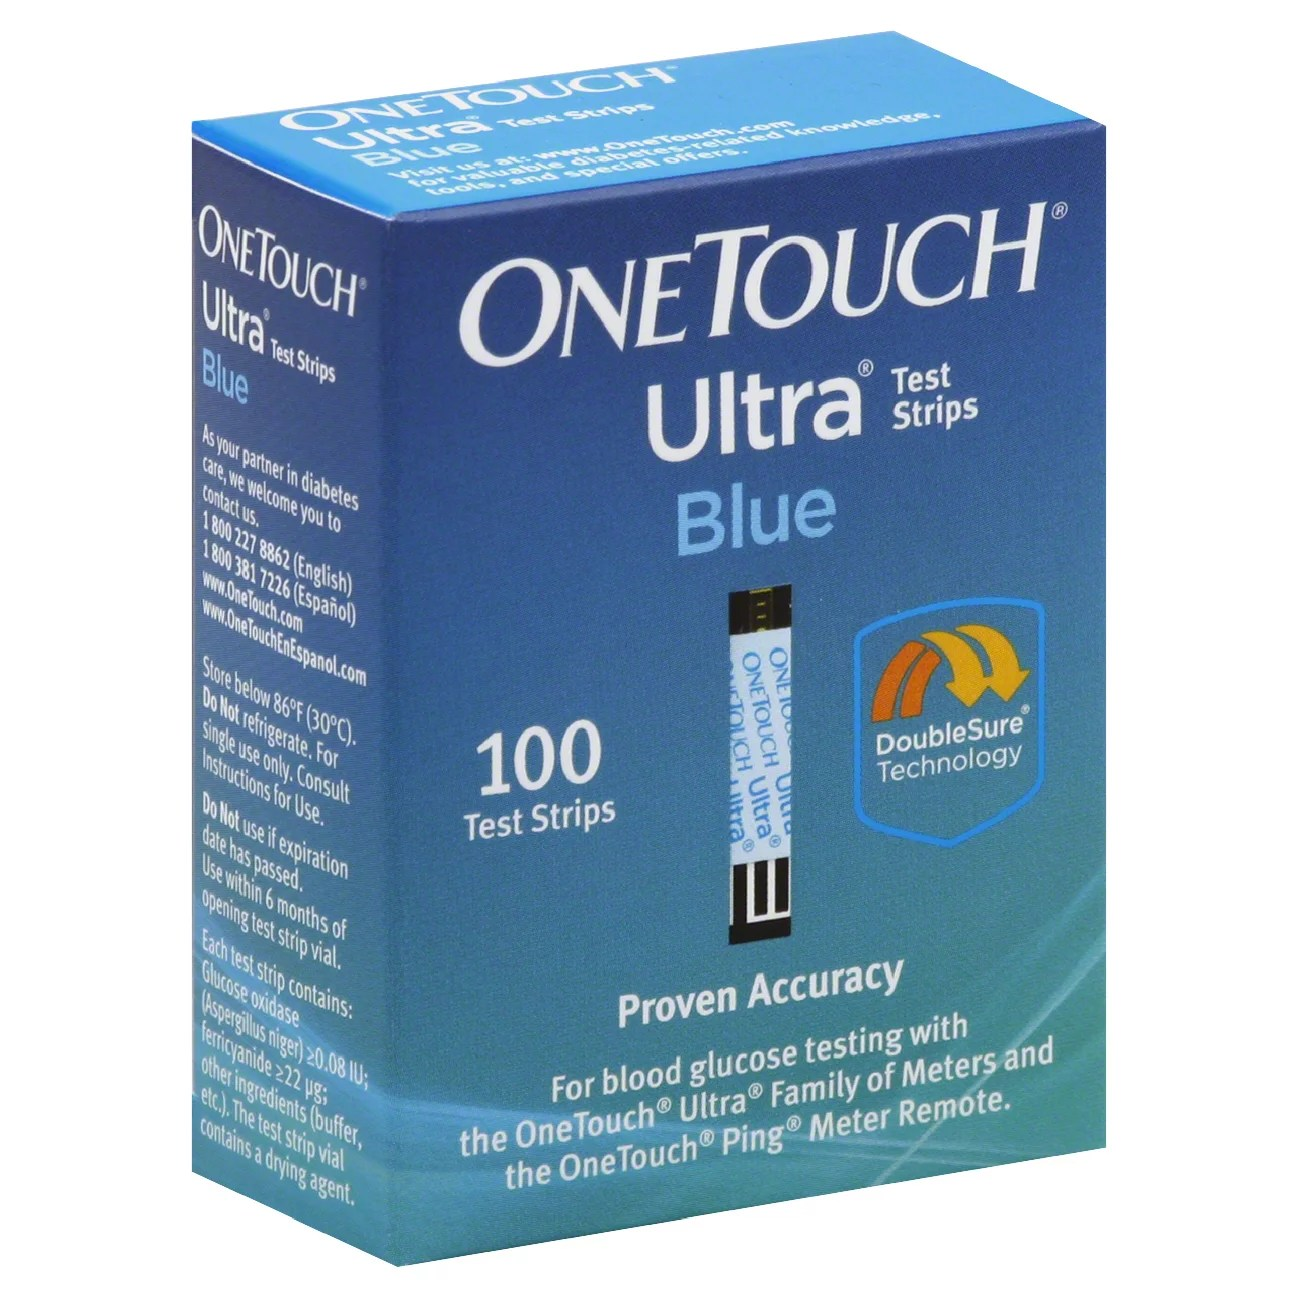 One Touch Ultra Blue Meter